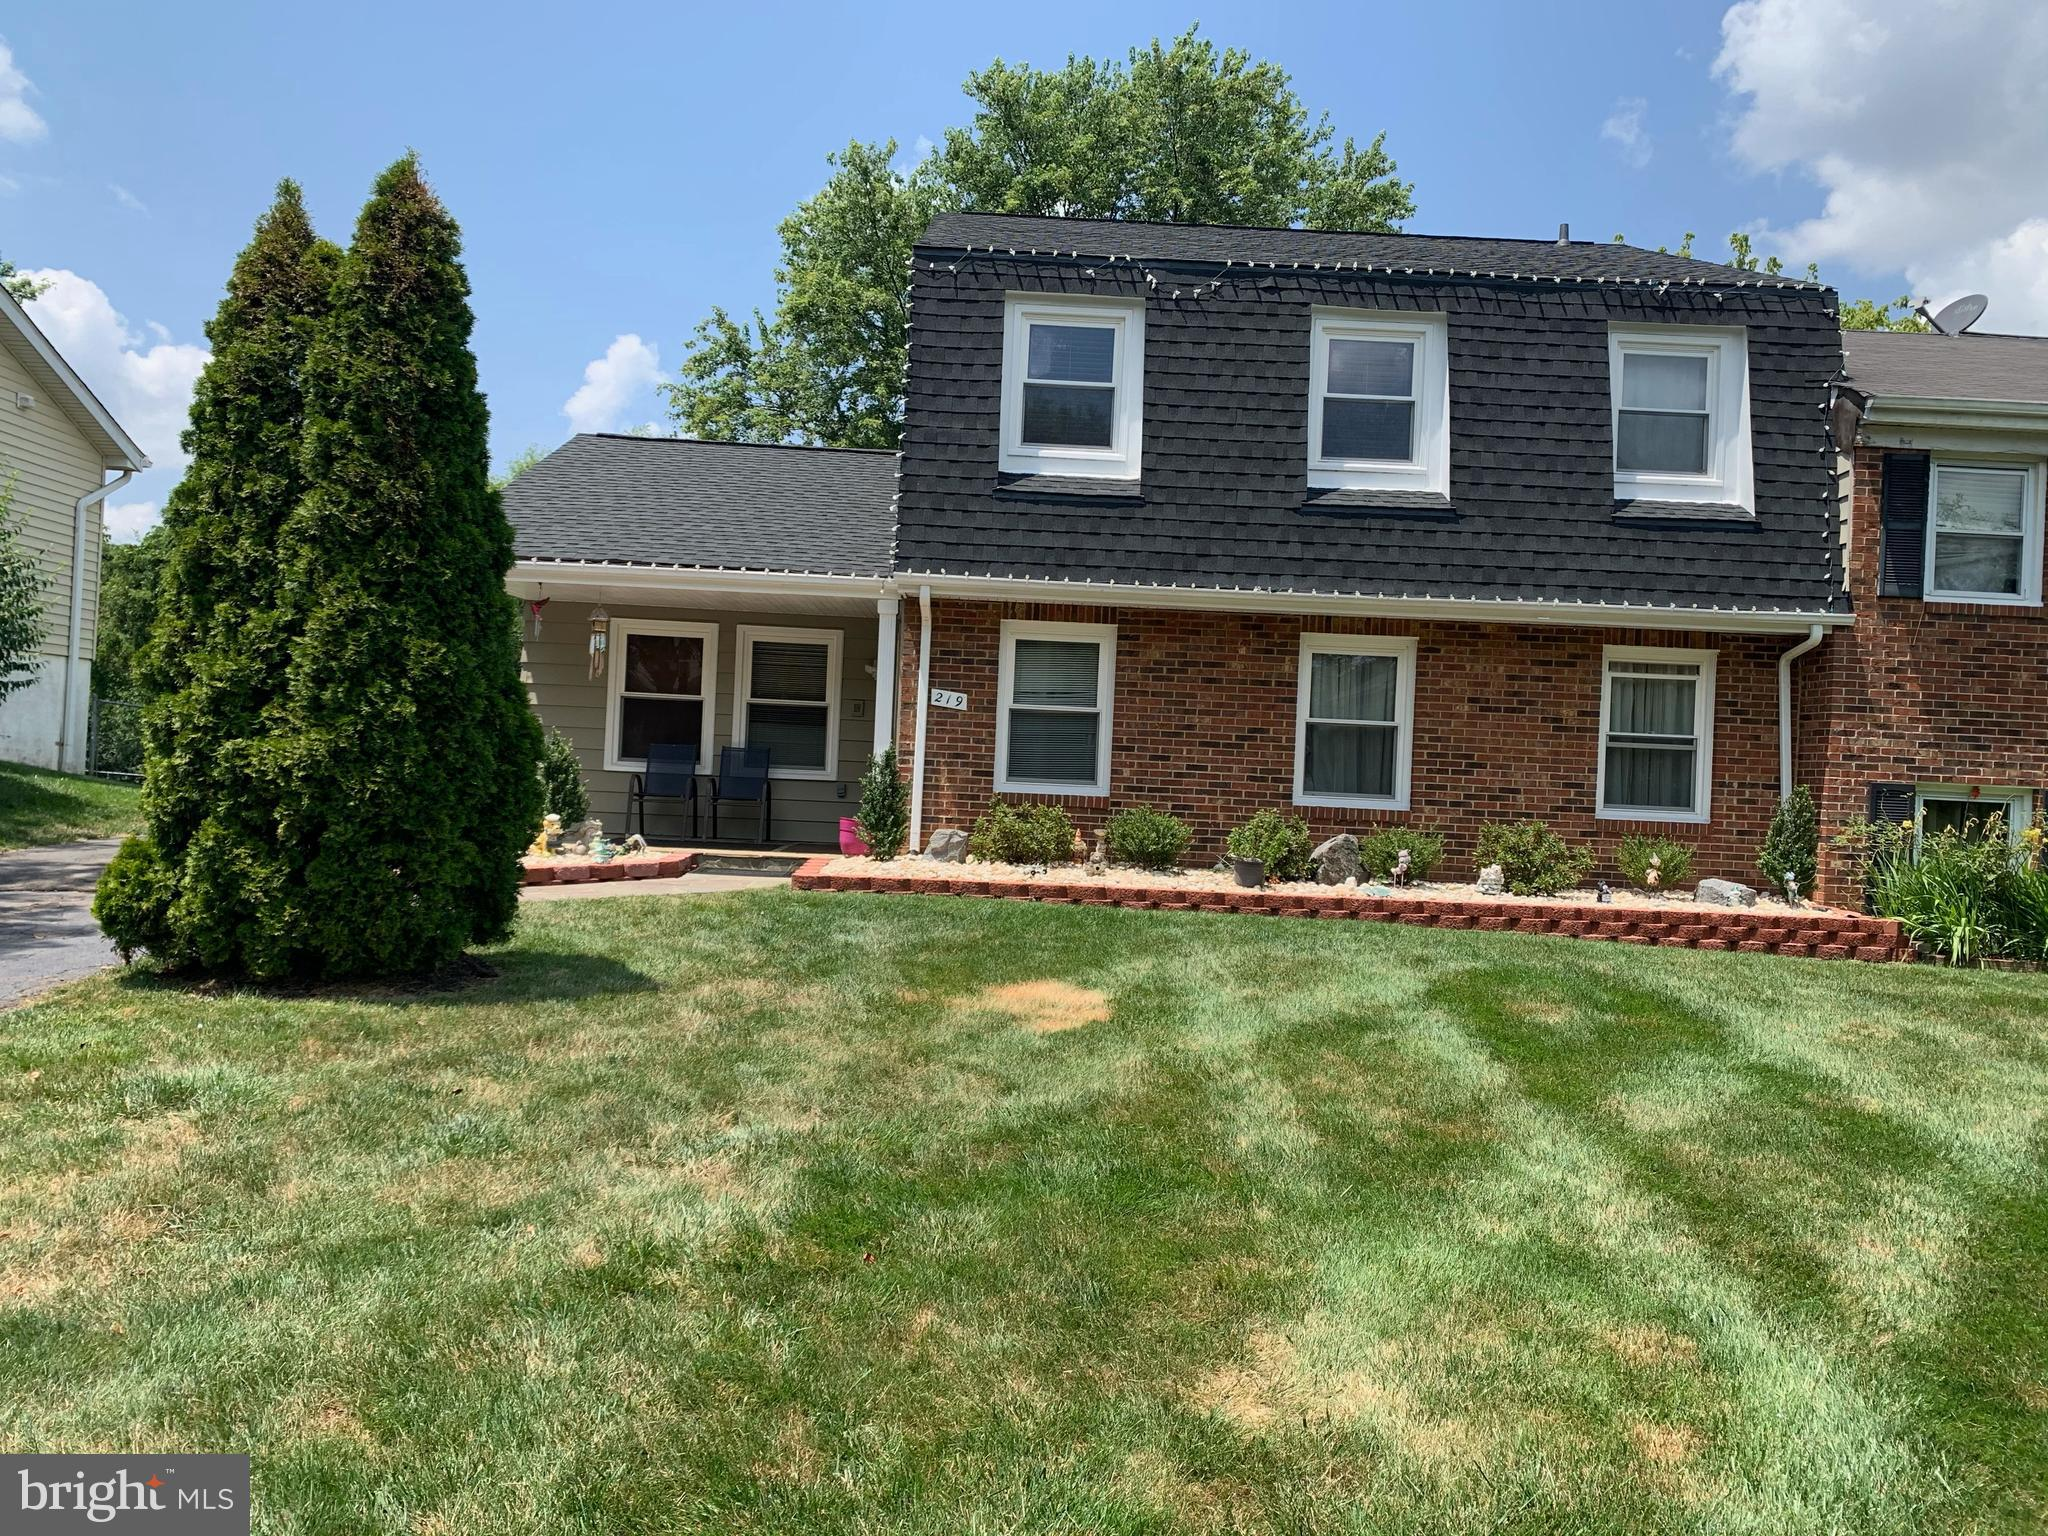 Welcome to 219 N Lincoln Ave. Sterling! Located in a nice and quiet neighborhood. This house has a l